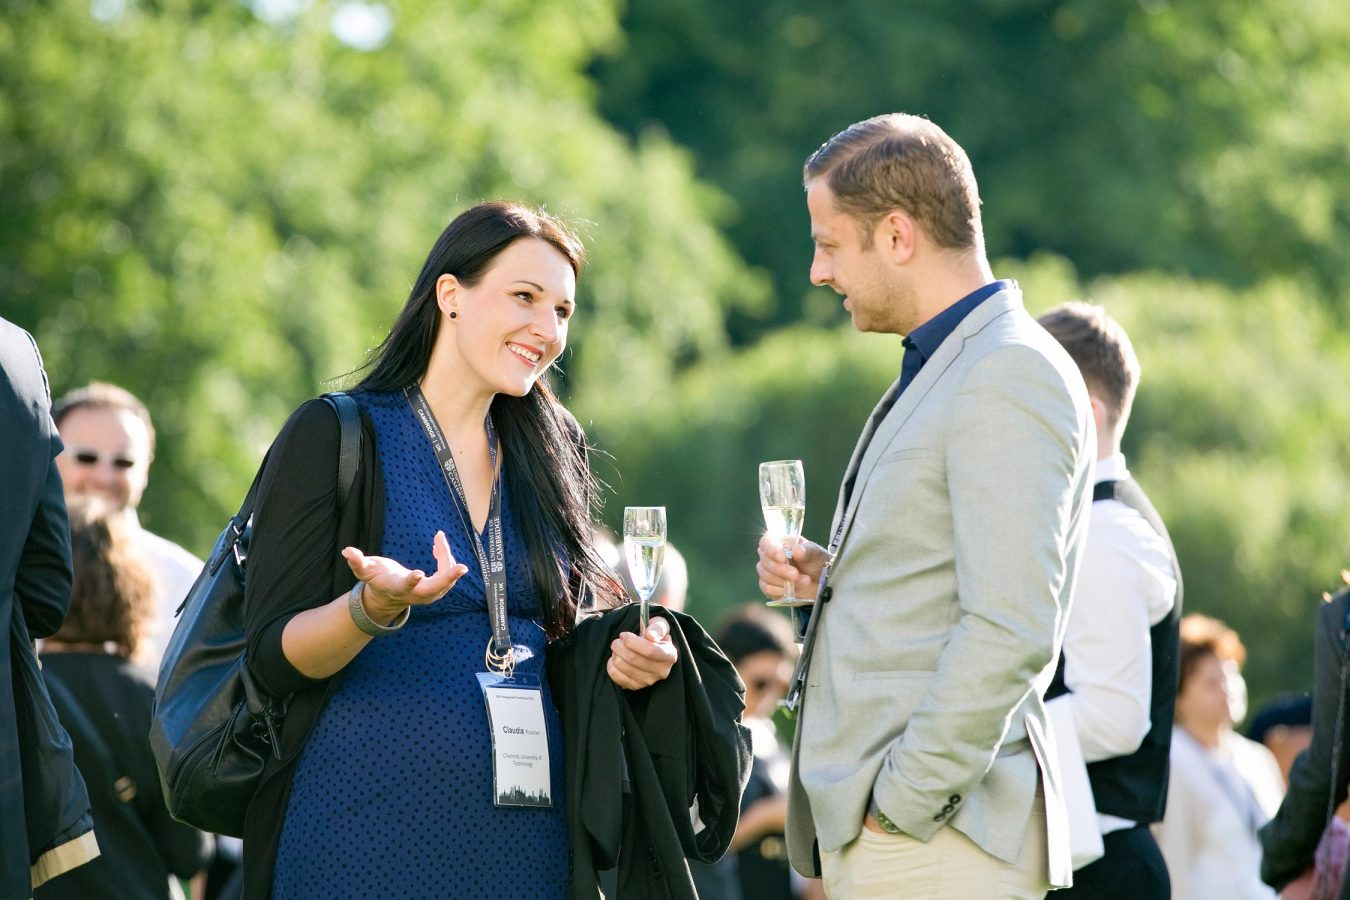 university-of-cambridge-conference-delegates-chatting-man-woman